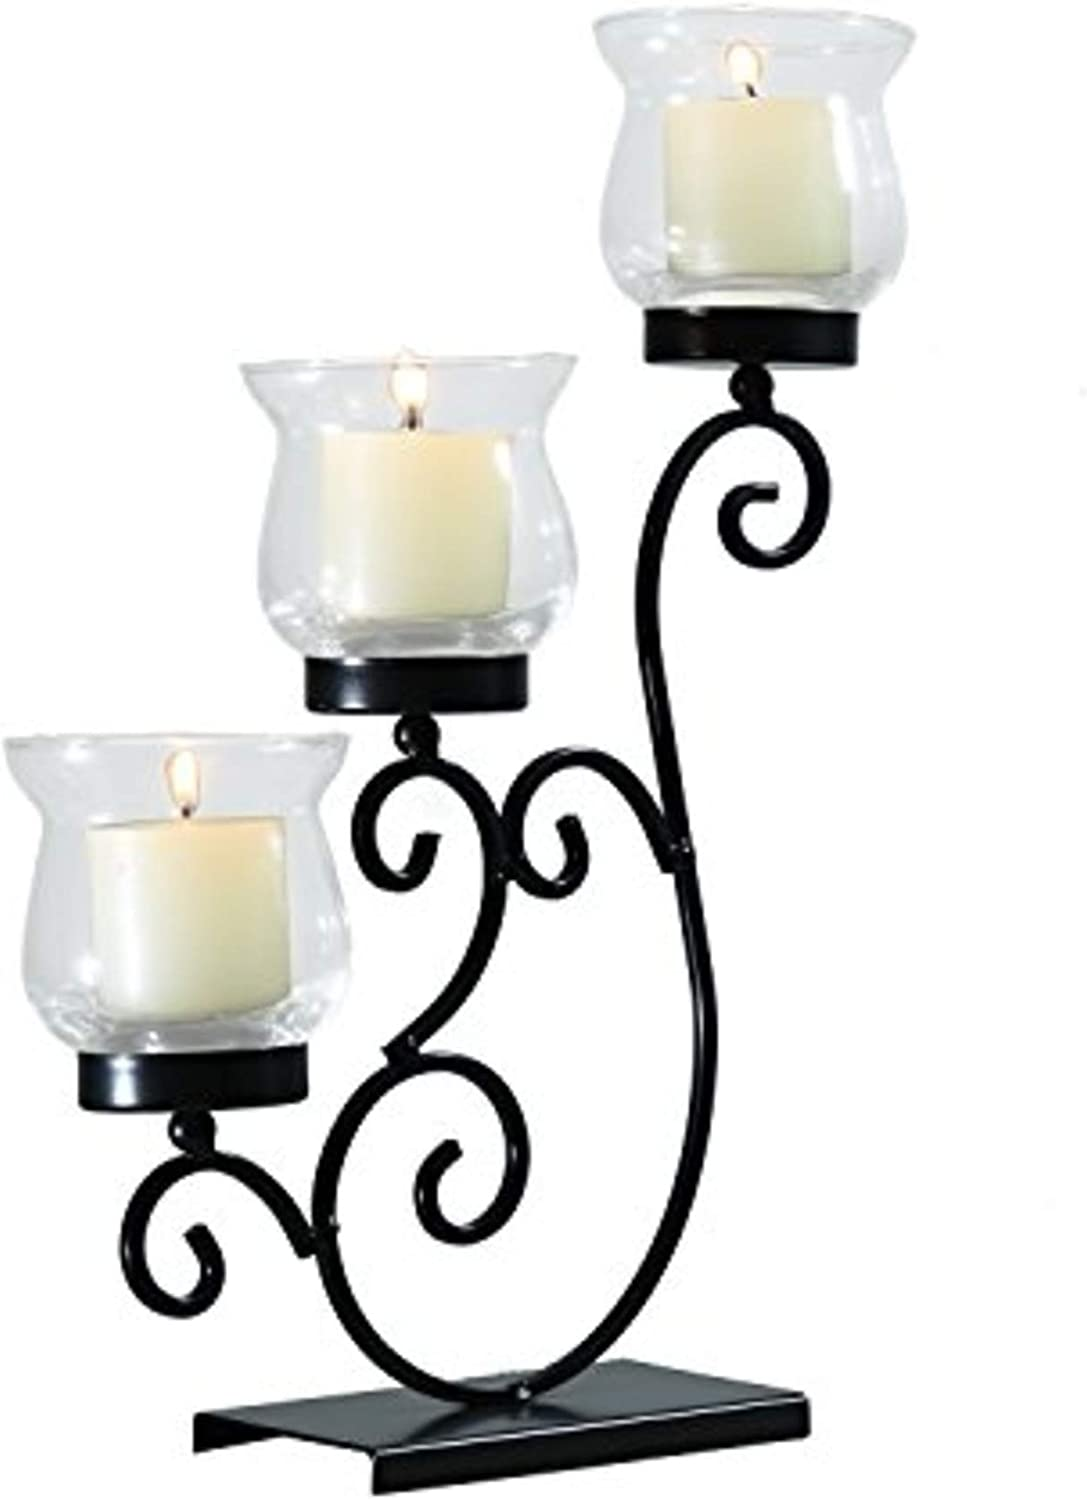 ELEGAN Decorative Metal Vertical Standing with Tealight Pillar Glass Candle Holder for Home Decor Set of 2